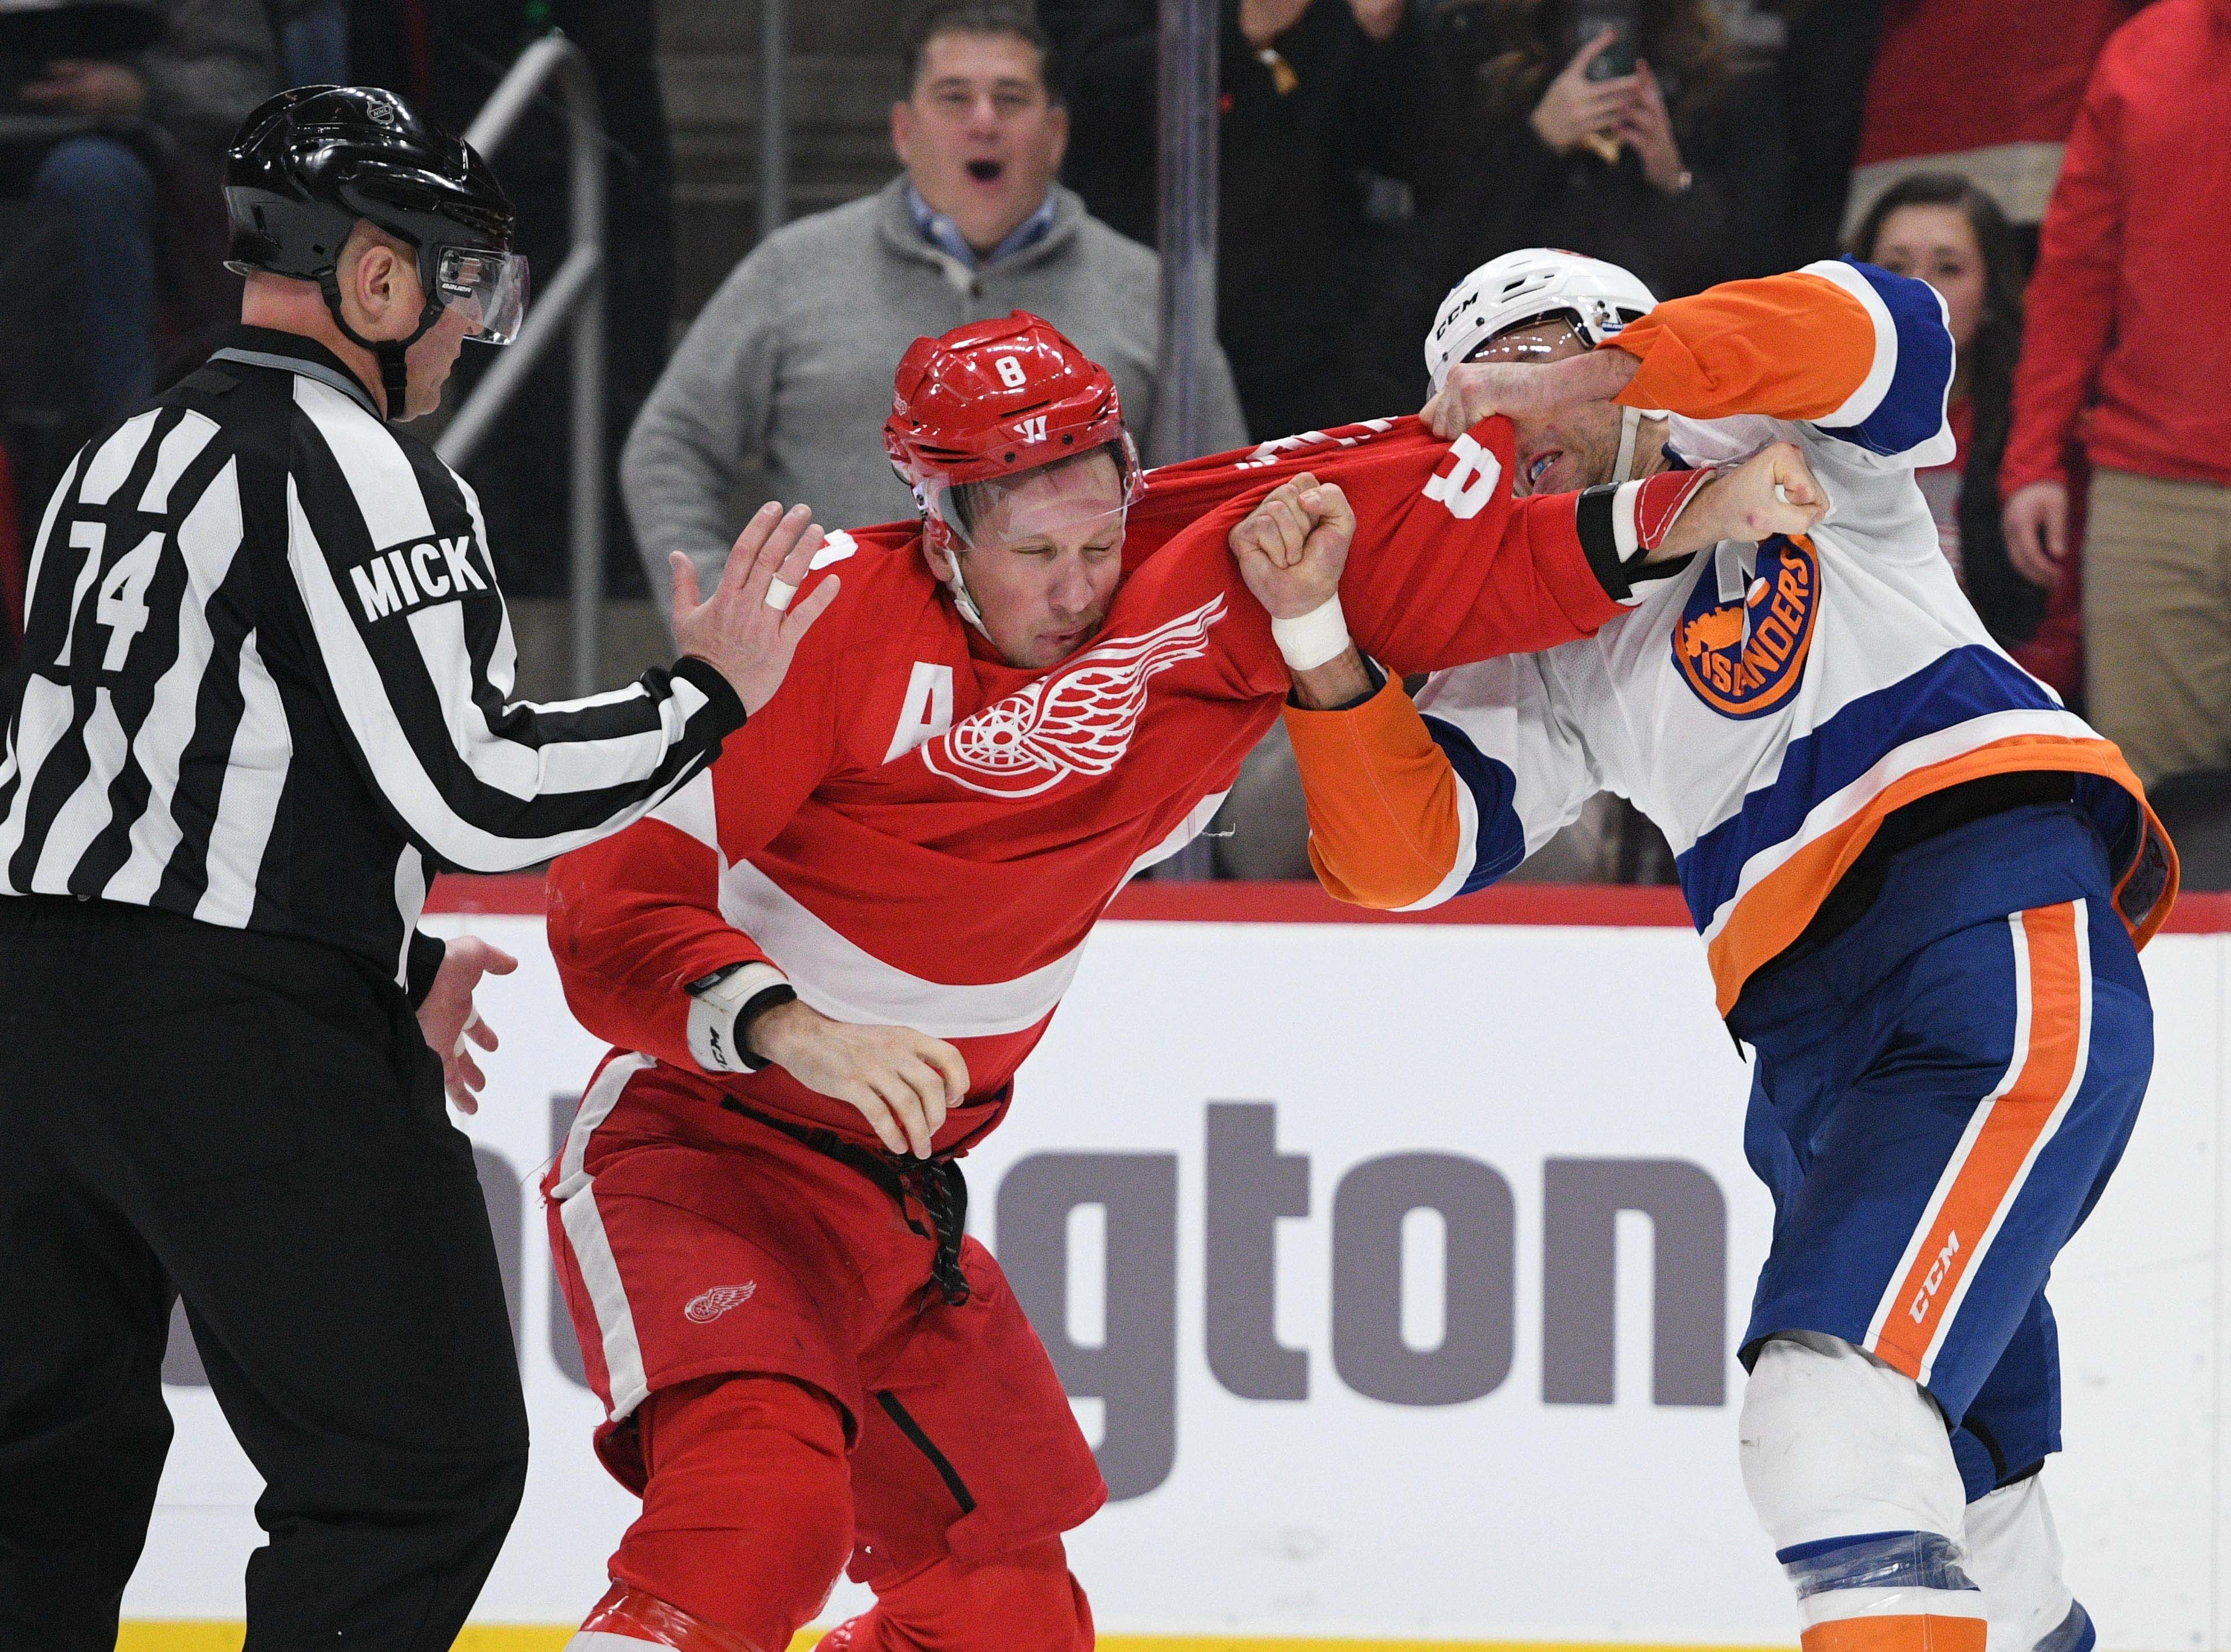 Dec. 8: Detroit Red Wings' Justin Abdelkader vs. New York Islanders' Johnny Boychuk.